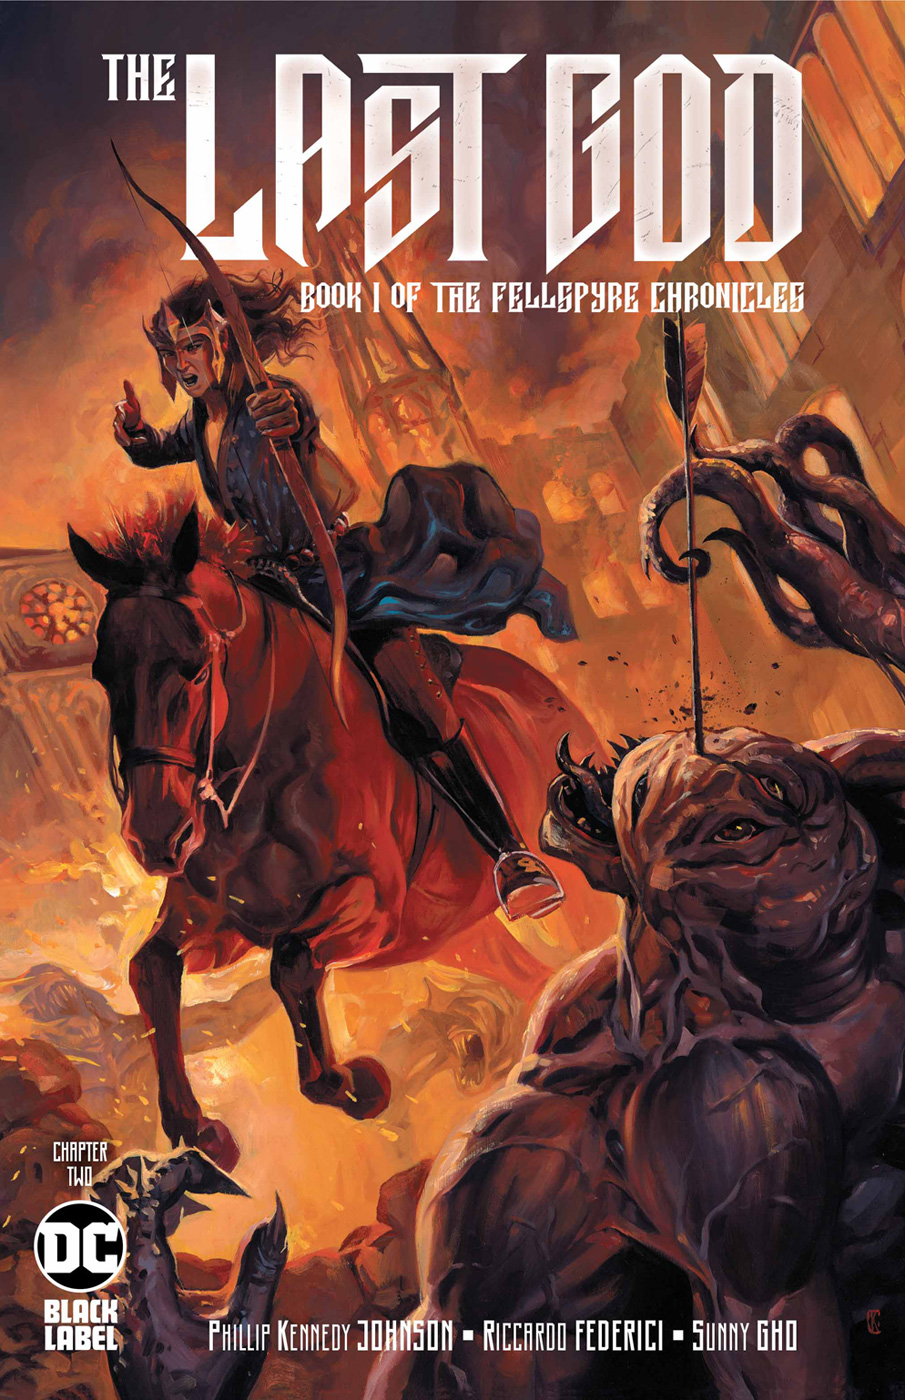 LAST GOD #1 BOOK ONE OF THE FELLSPYRE CHRONICLE DC COMIC BOOK NEW OCT 2019